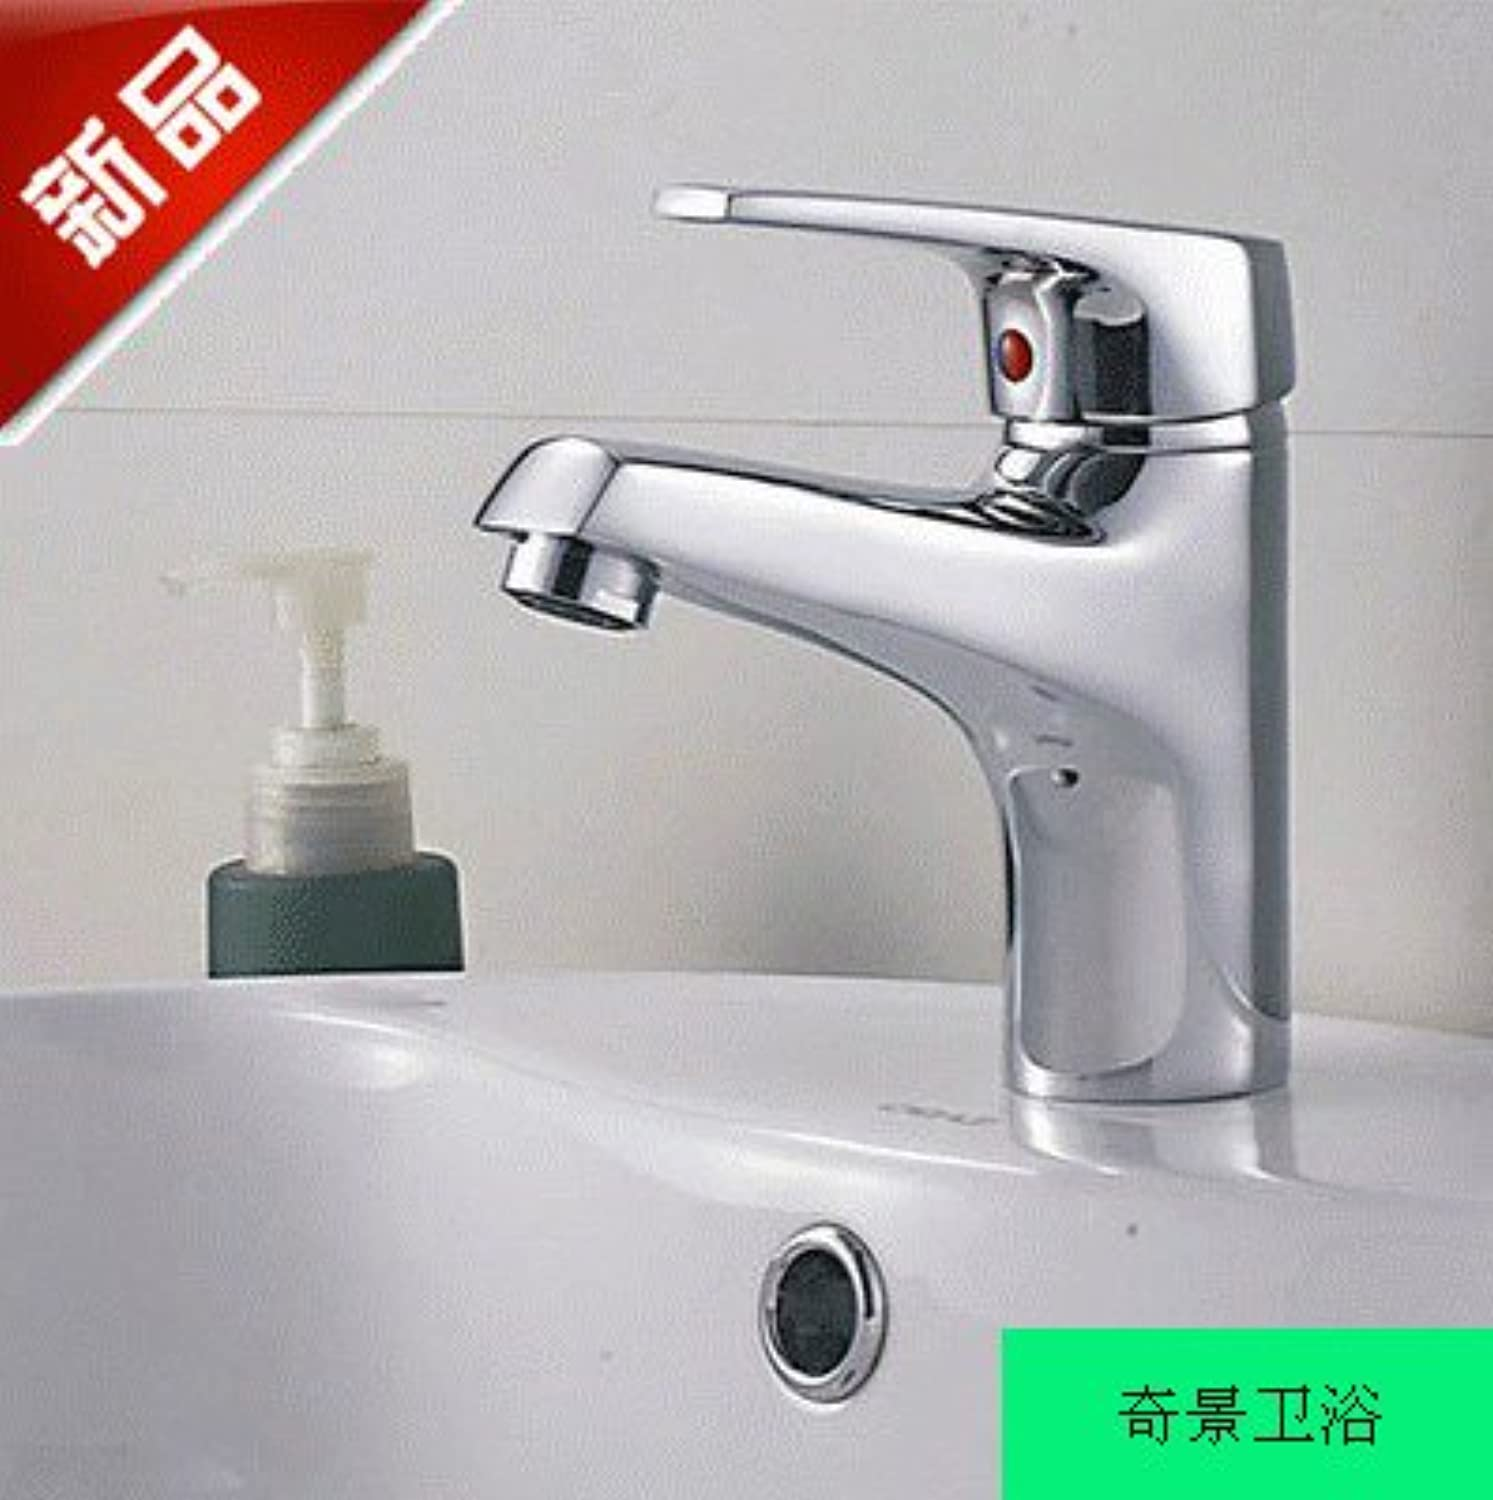 Gyps Faucet Single Lever Washbasin Mixer Tap All Copper Wash Basin Faucet Hot and Cold Wash Basin Bathroom Cabinet Single Handle Faucet Full Copper